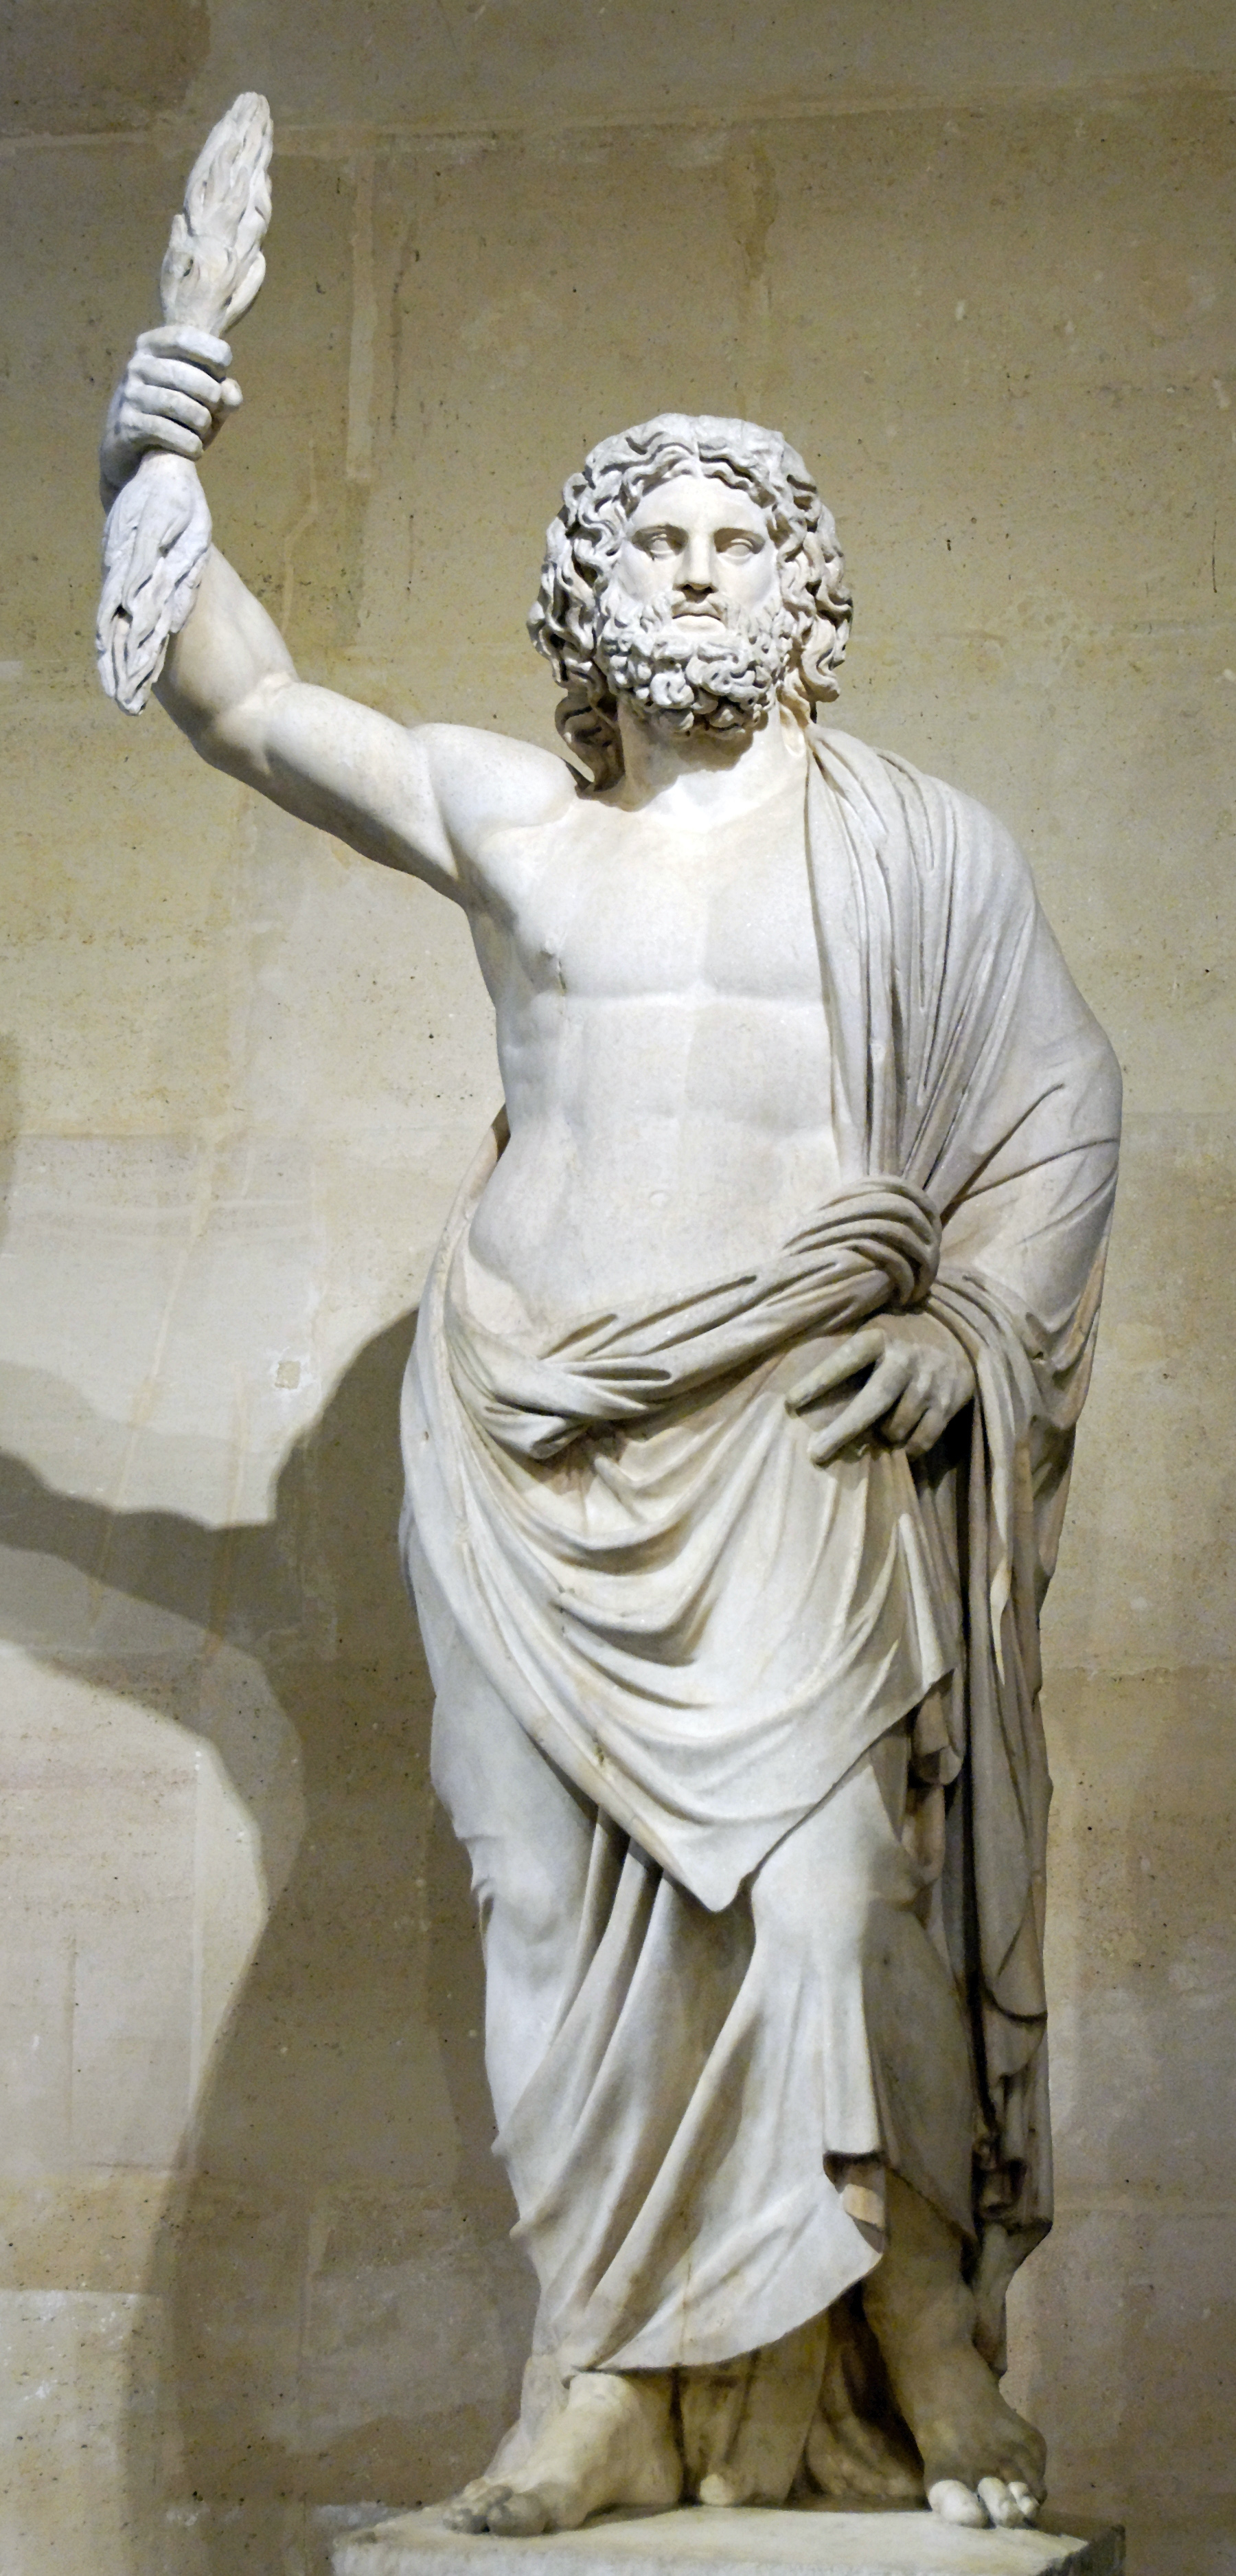 https://upload.wikimedia.org/wikipedia/commons/c/c8/Jupiter_Smyrna_Louvre_Ma13.jpg